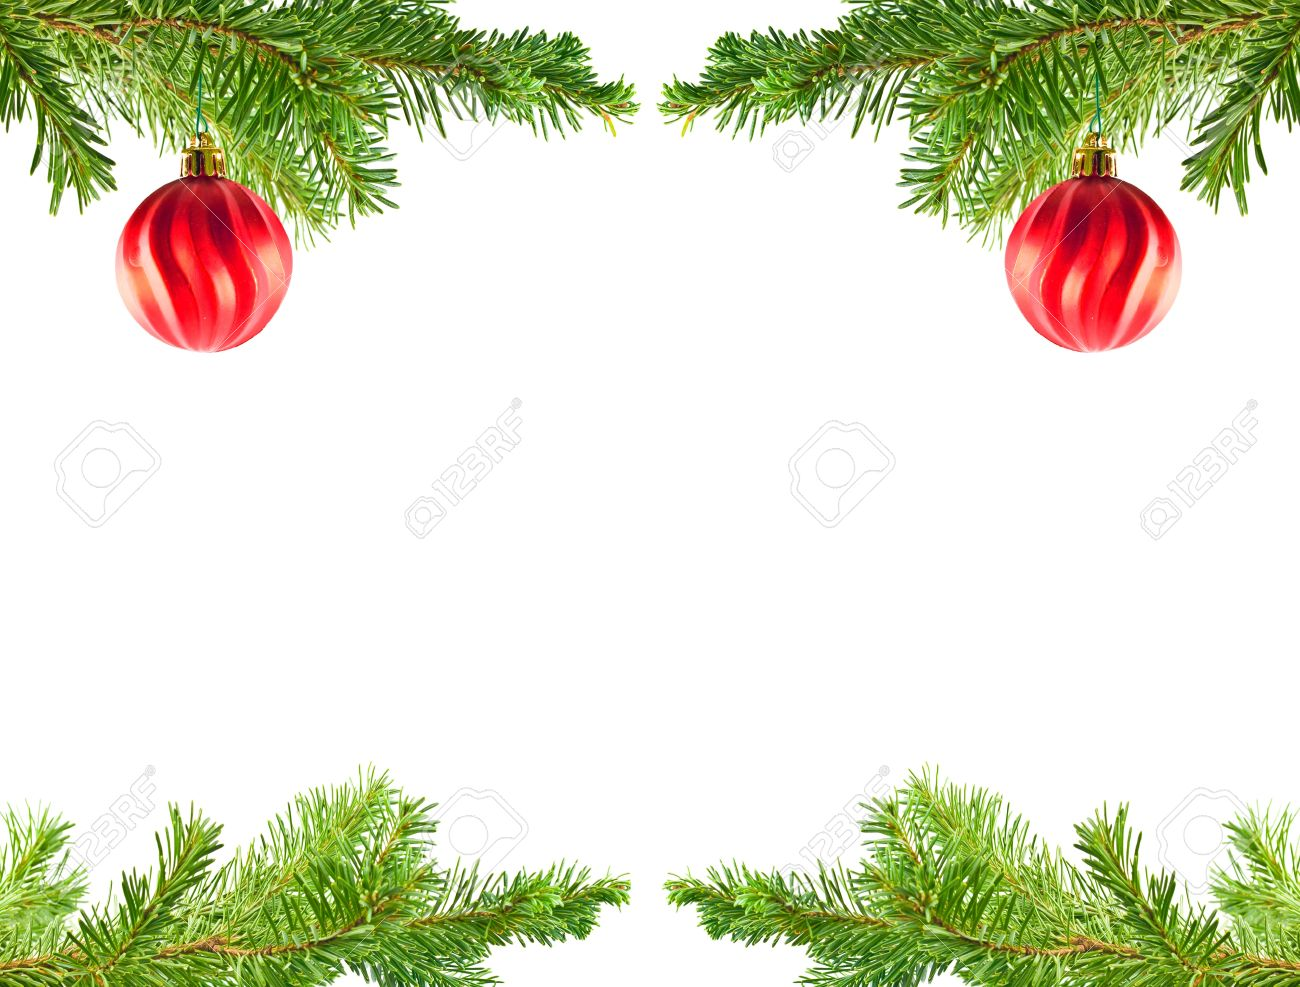 Christmas Tree Holiday Ornaments On An Evergreen Branch Frame Stock